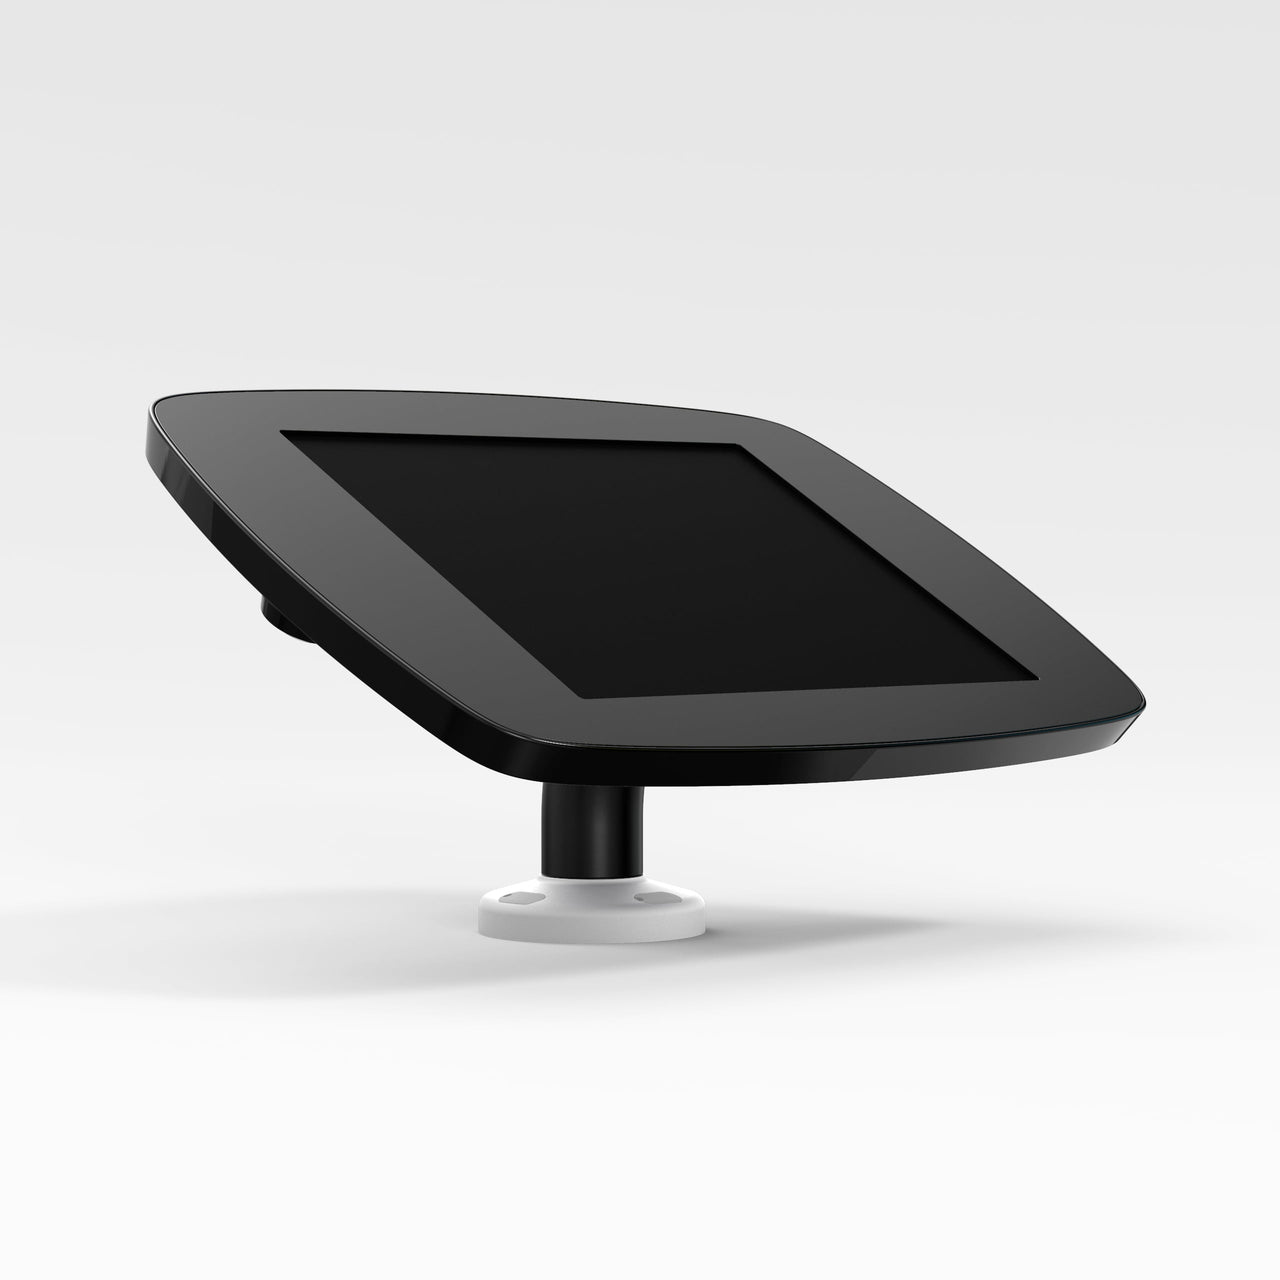 Bouncepad Swivel Desk - A secure rotating tablet & iPad desk mount in black.